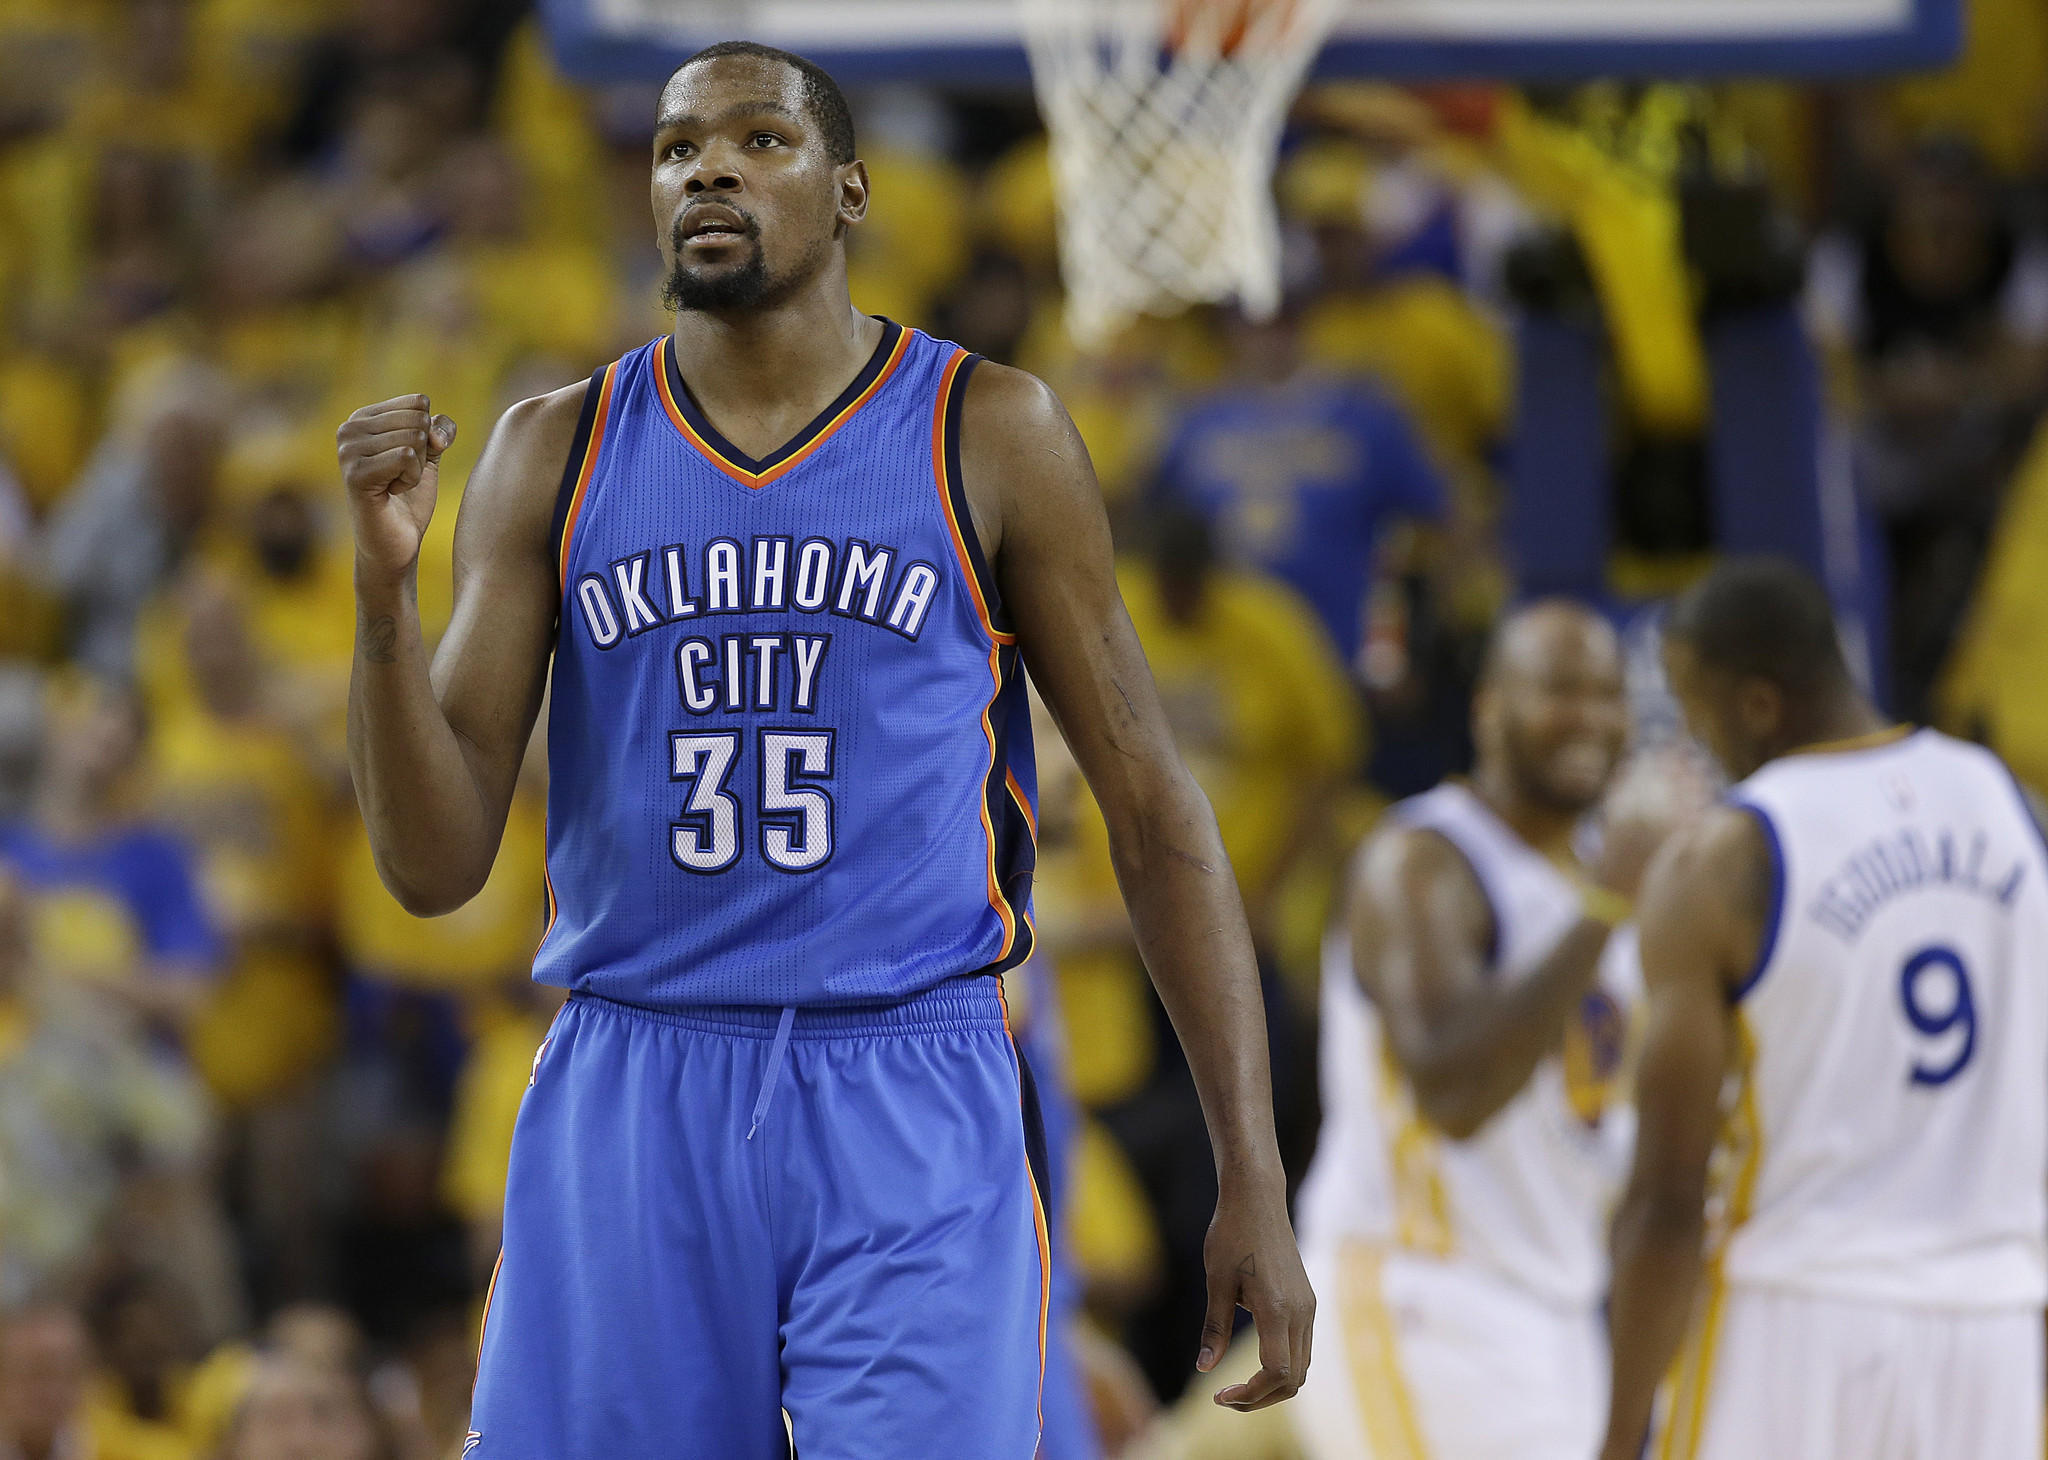 La-sp-clippers-will-be-among-the-first-teams-to-meet-with-free-agent-kevin-durant-20160630-snap